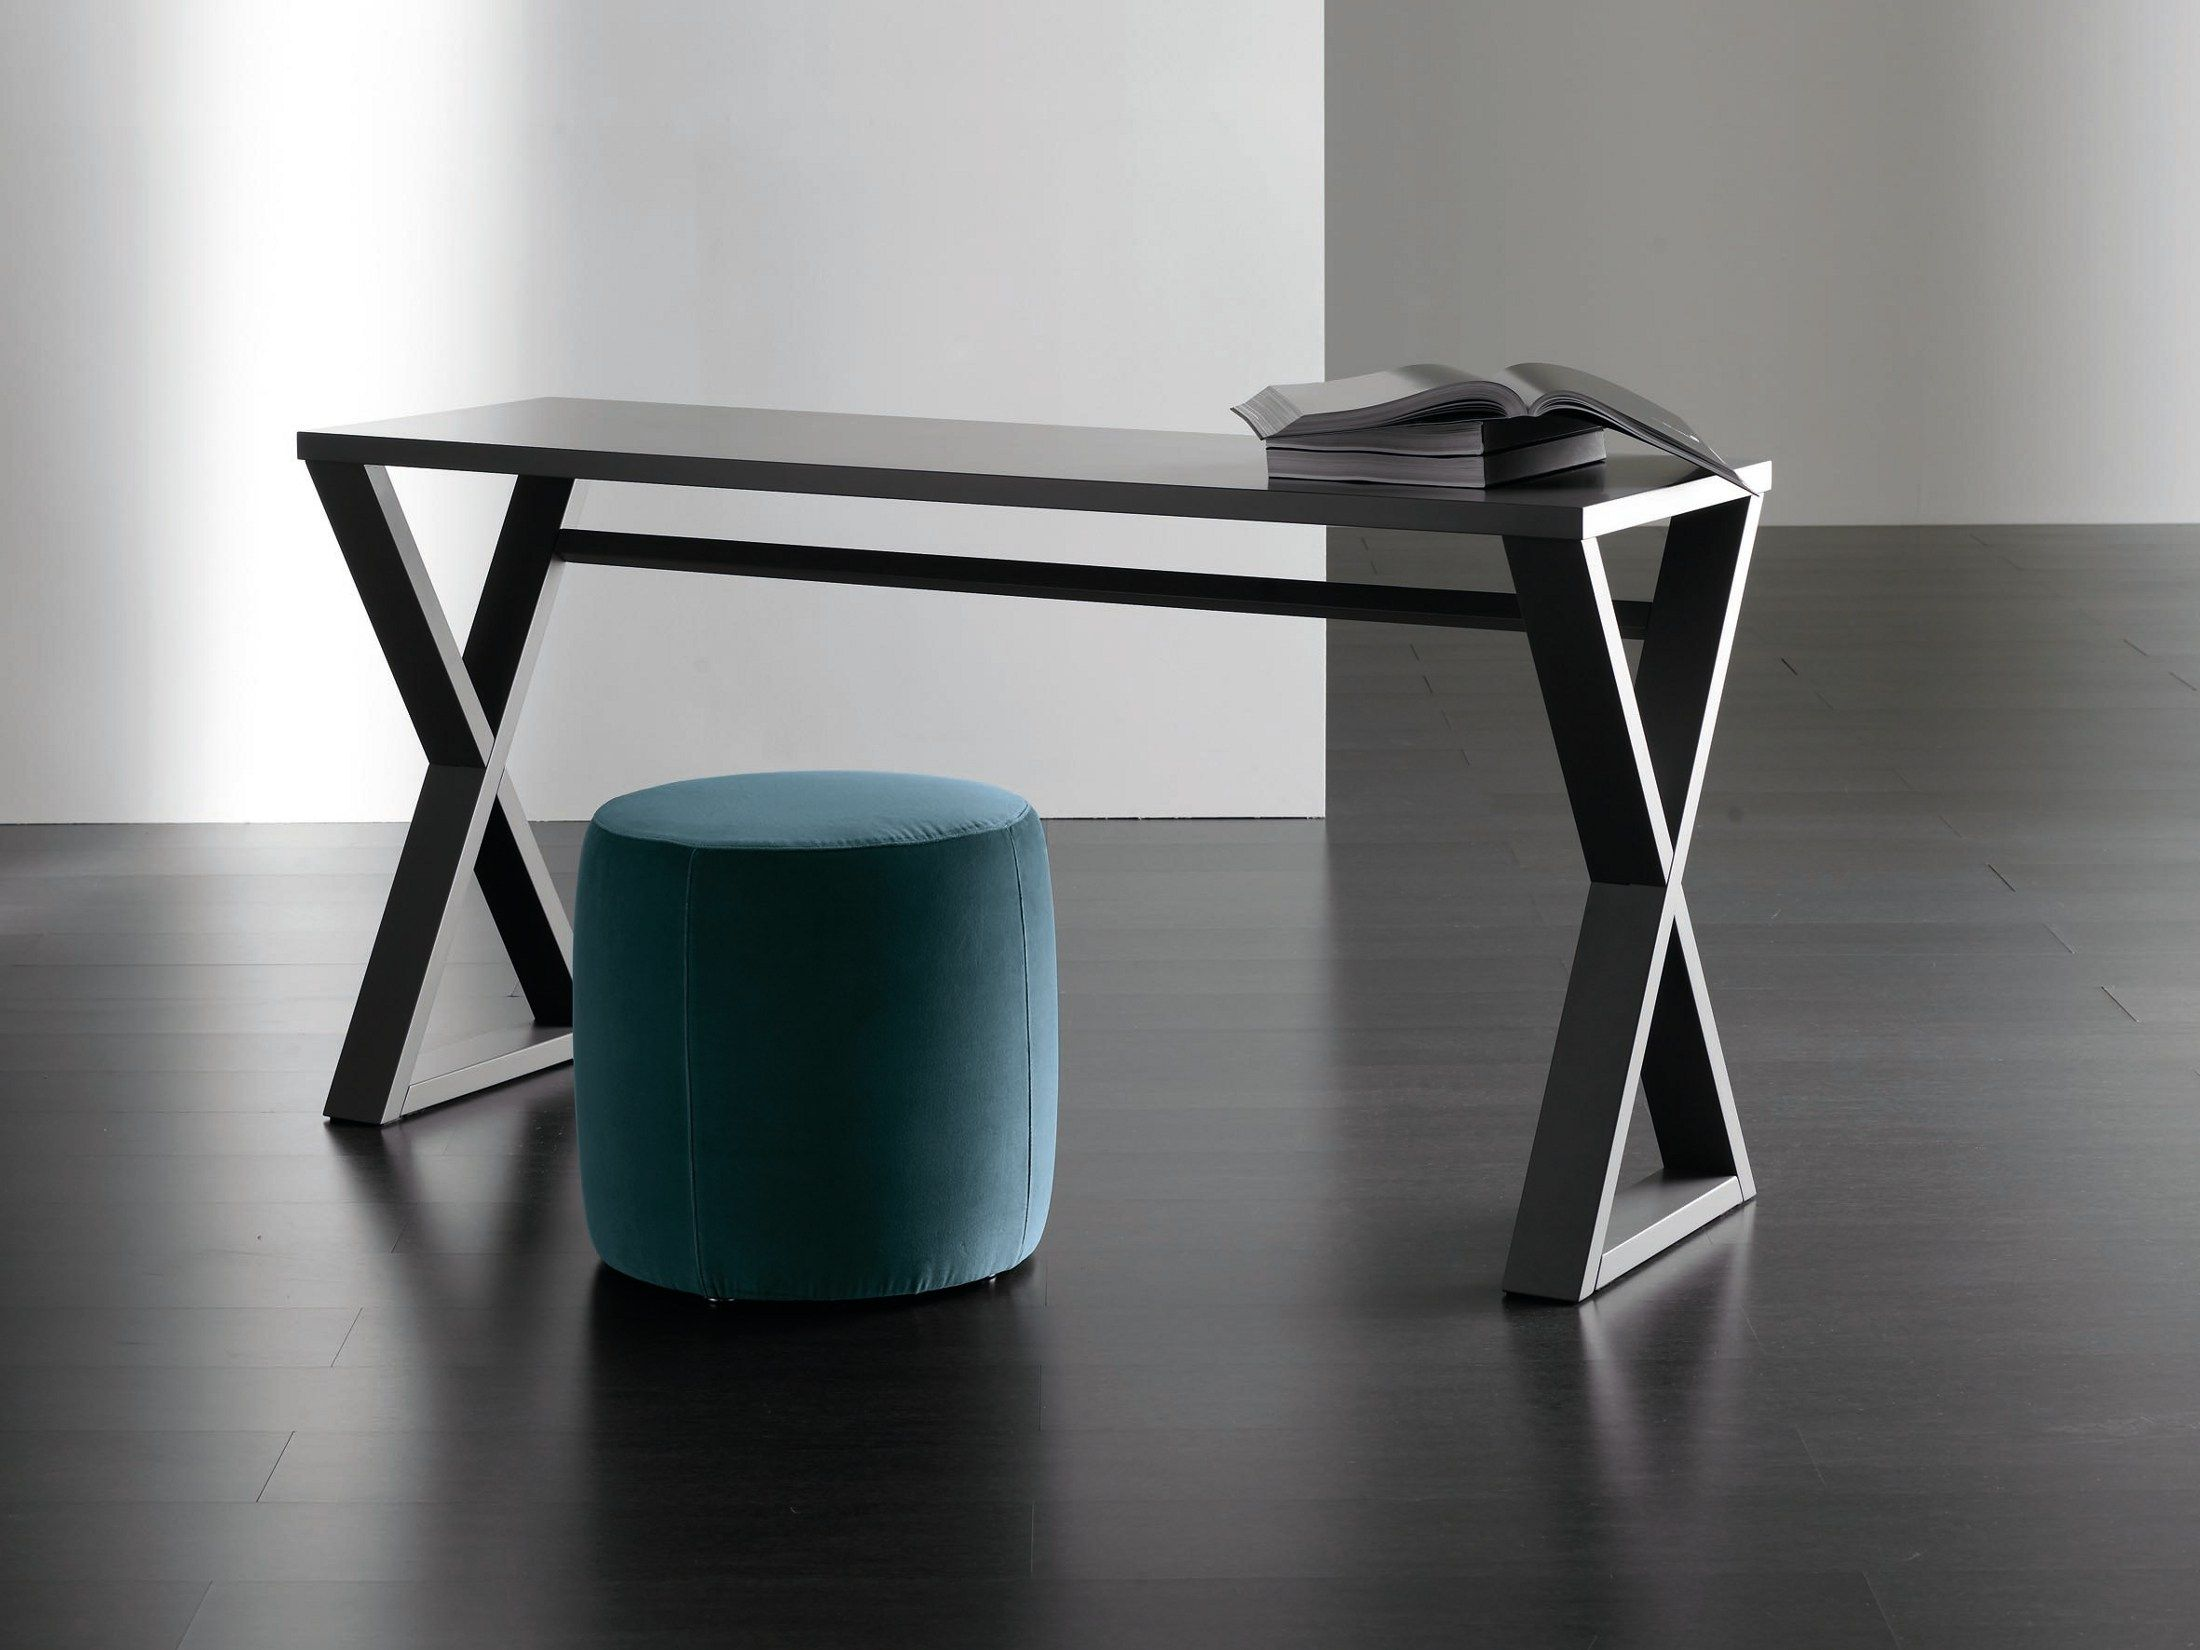 CRUISE Console table by Meridiani | FURNITURE / Table ...